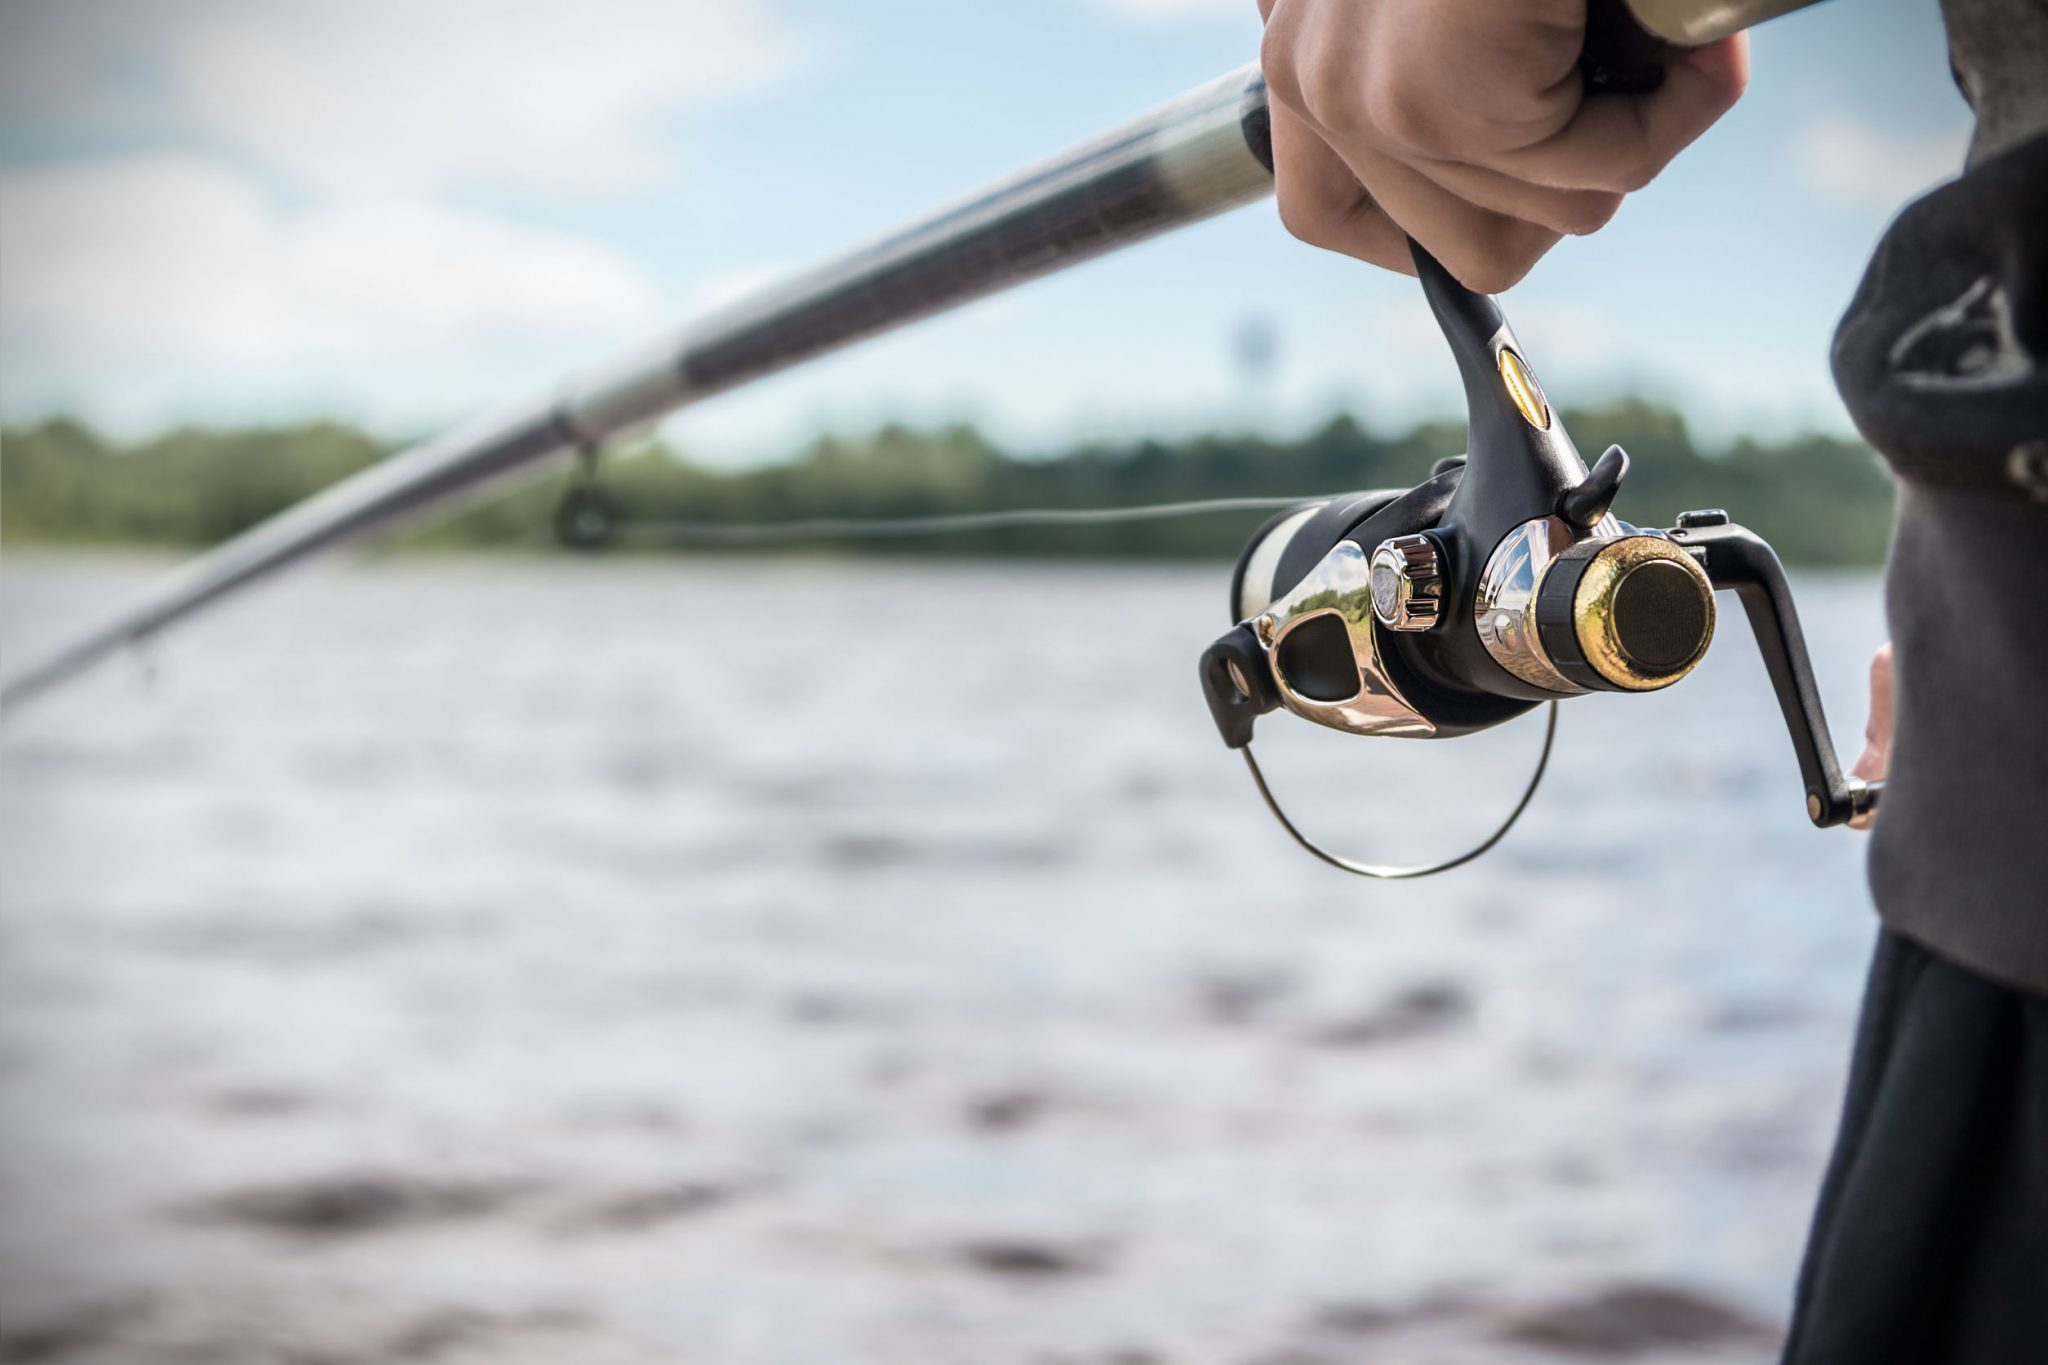 Hand holding a fishing rod and reel in front of a body of water